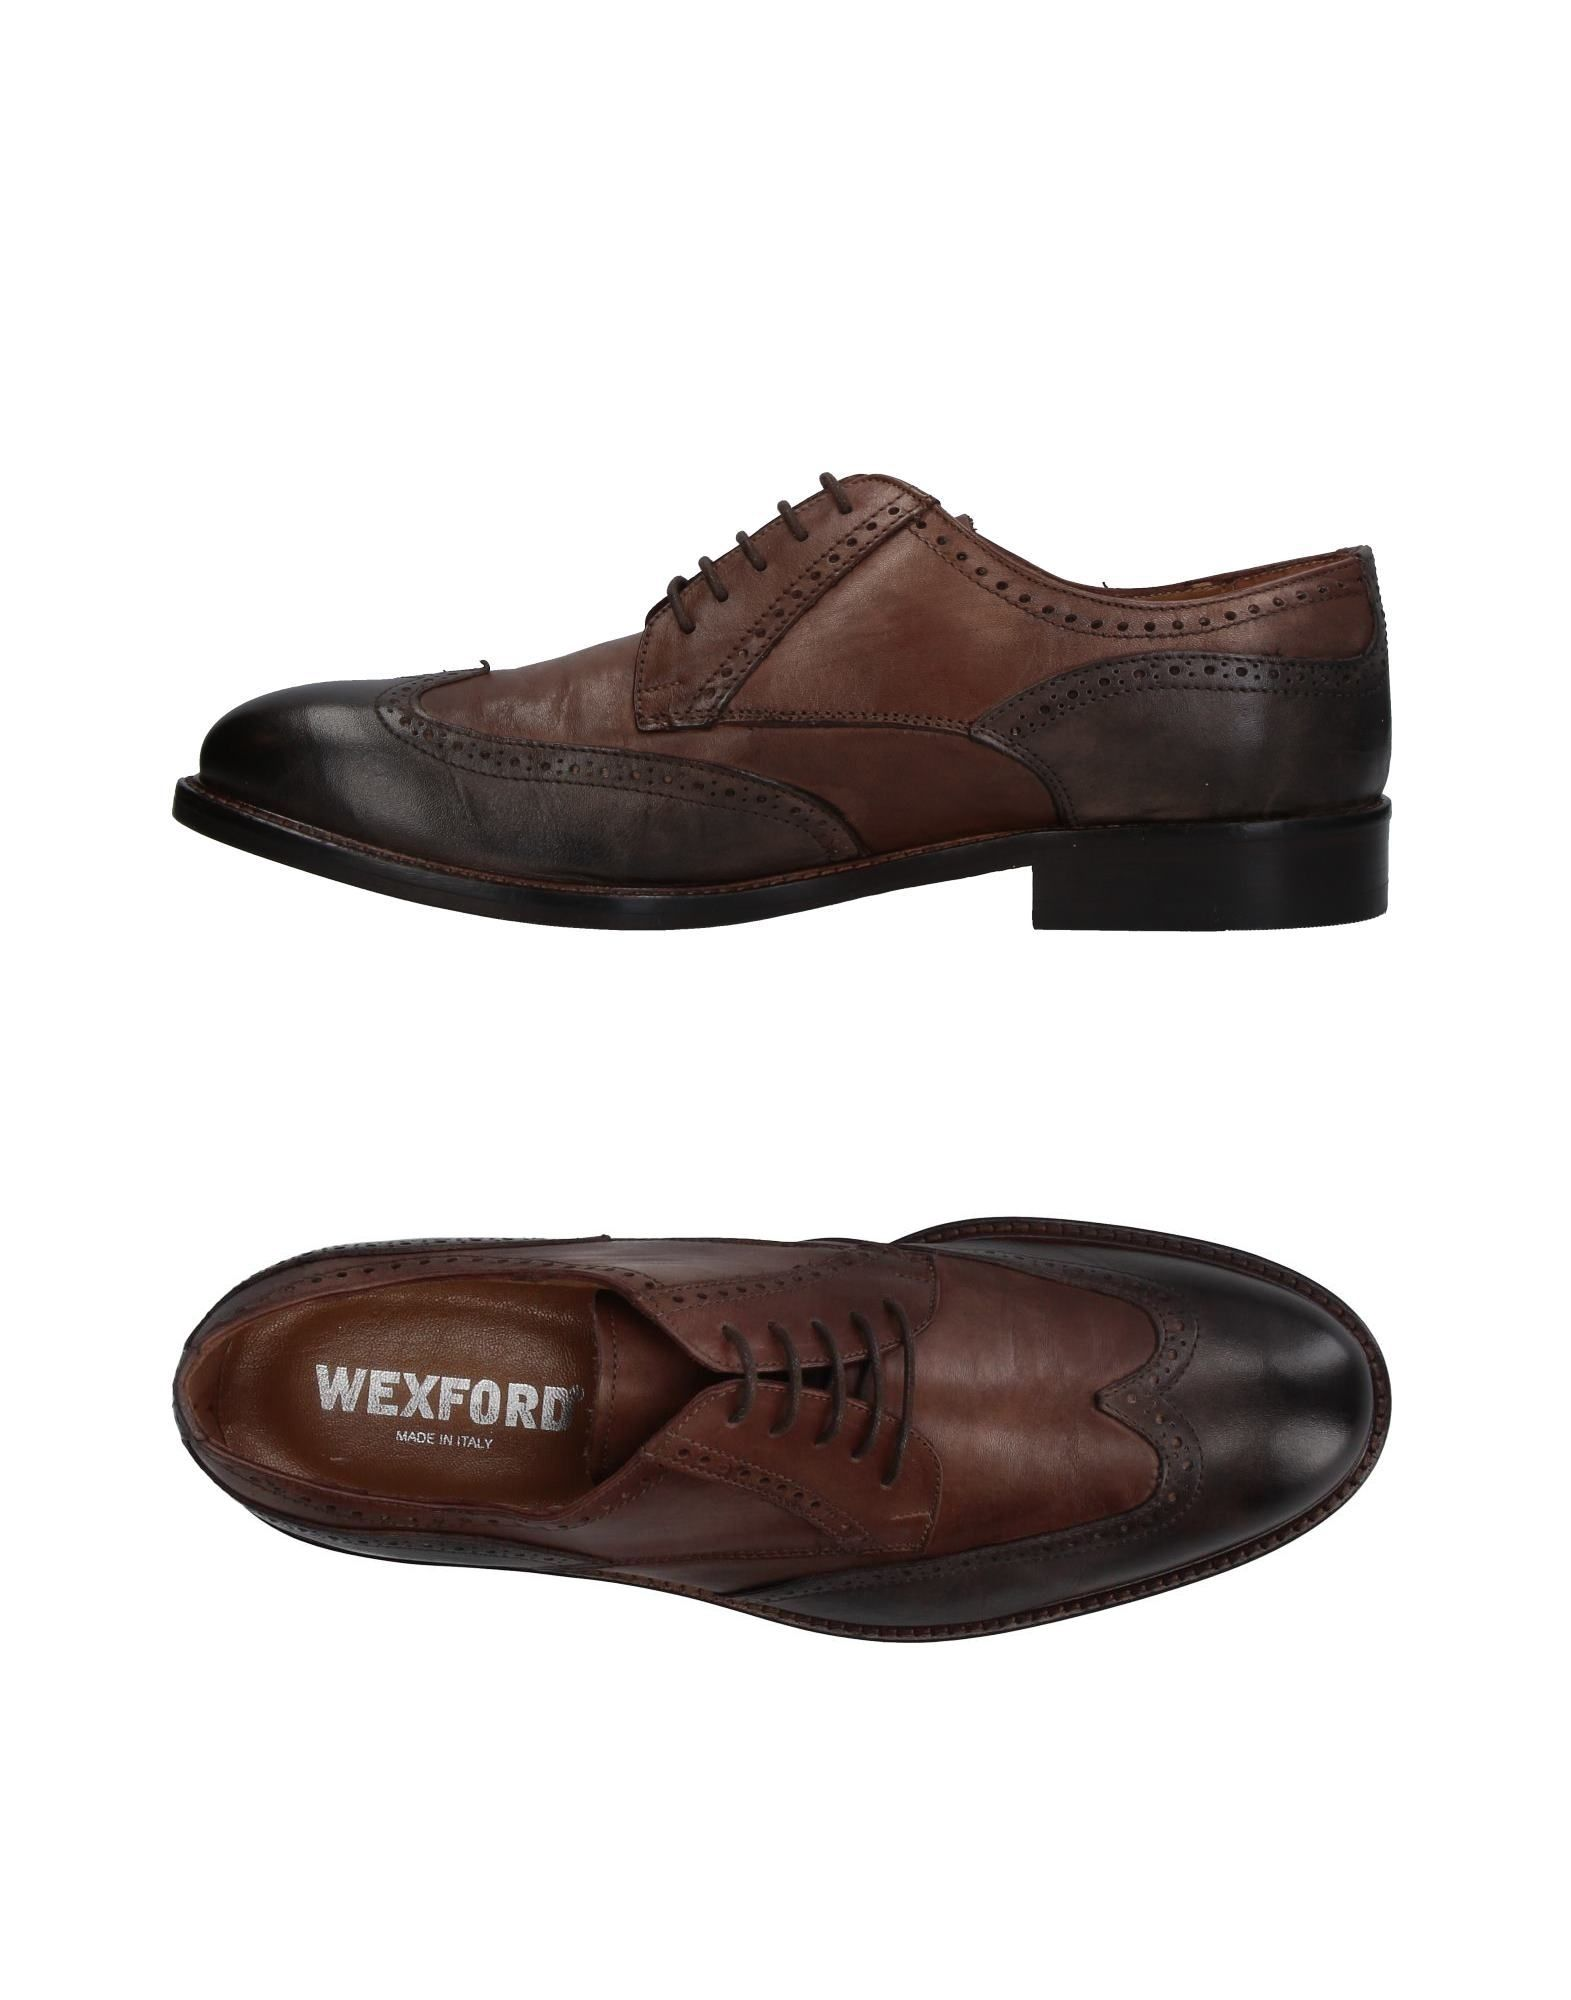 CHAUSSURES - Chaussures à lacetsWexford 8zgIdtzZfG